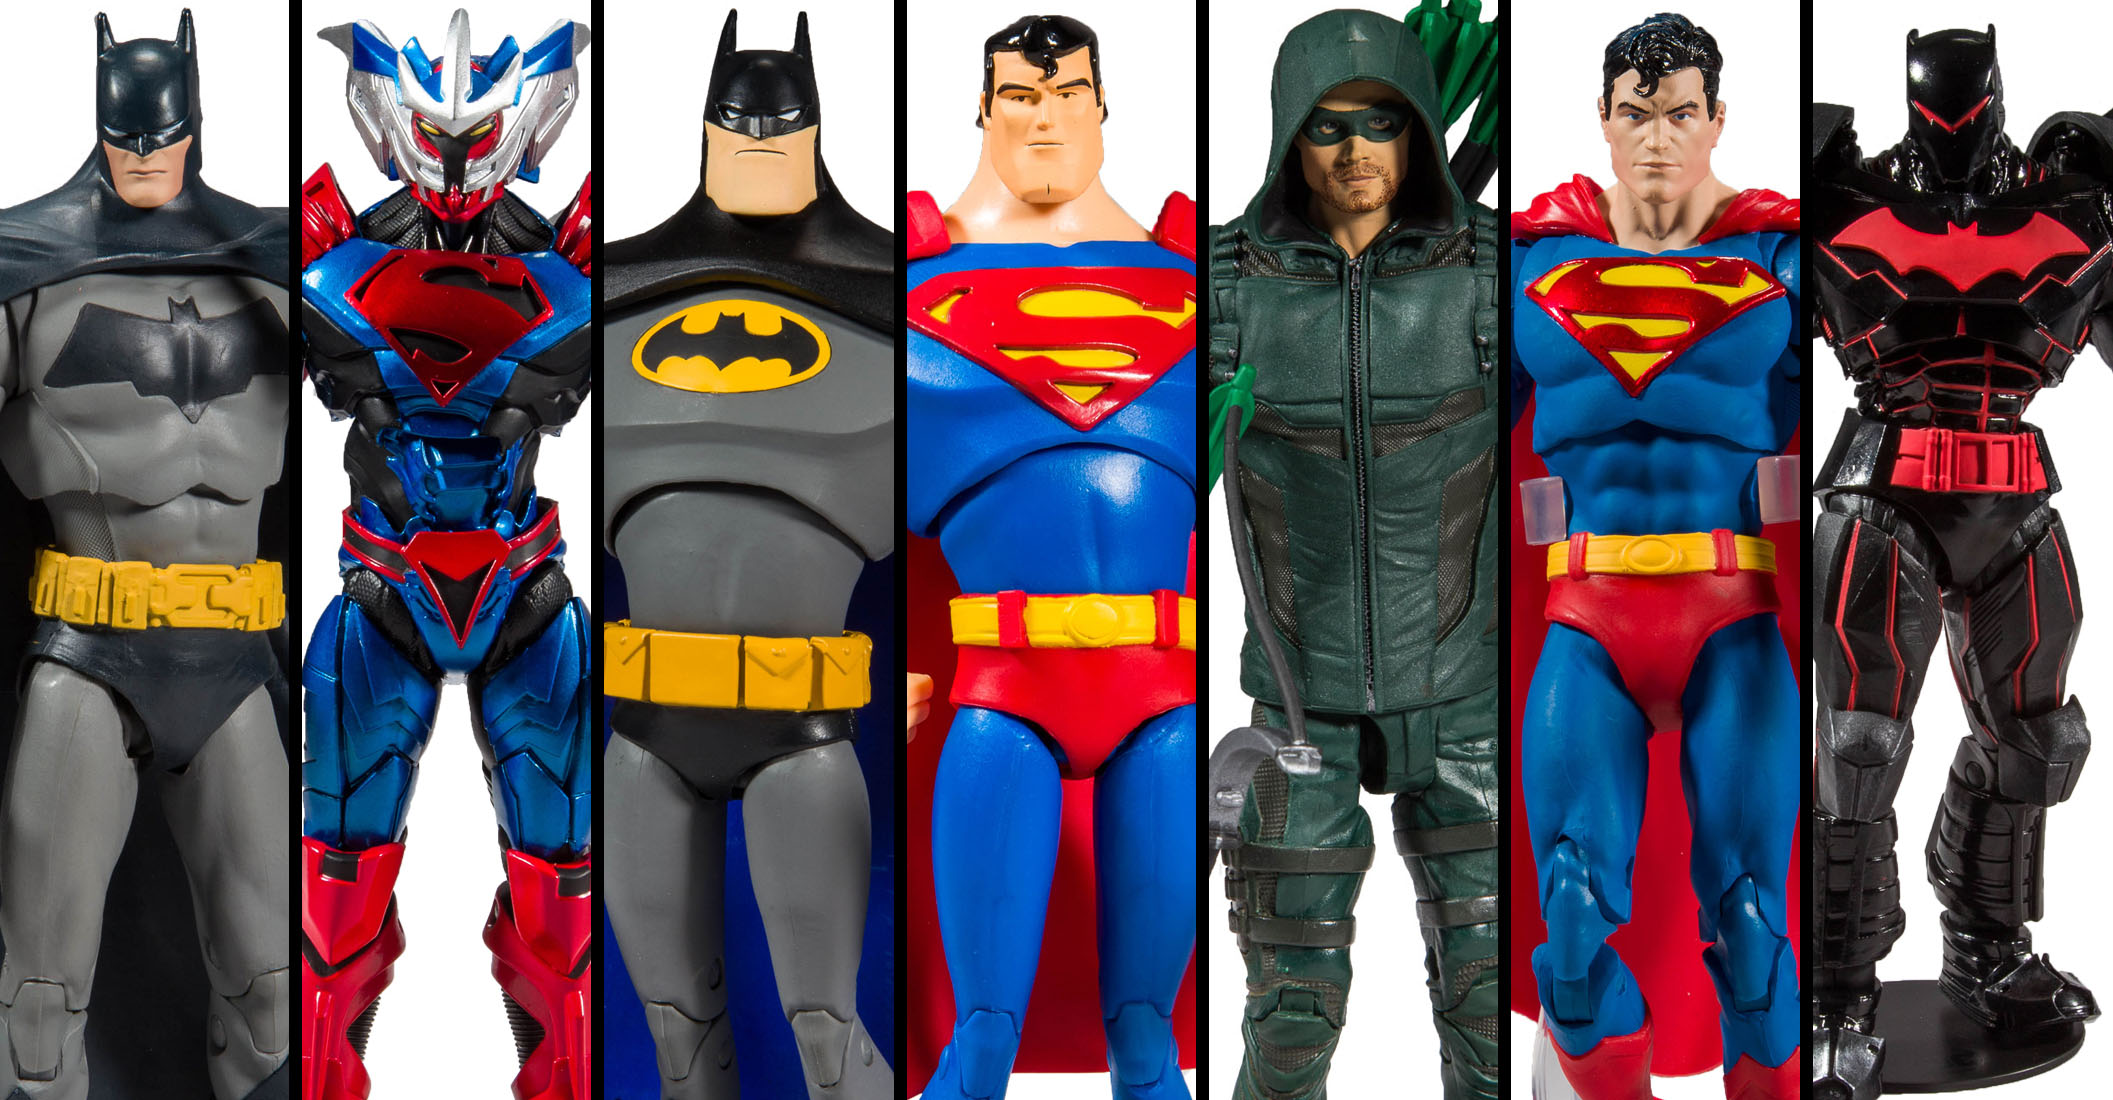 DC MULTIVERSE ANIMATED WAVE 1 SUPERMAN MCFARLANE TOYS IN STOCK NOW